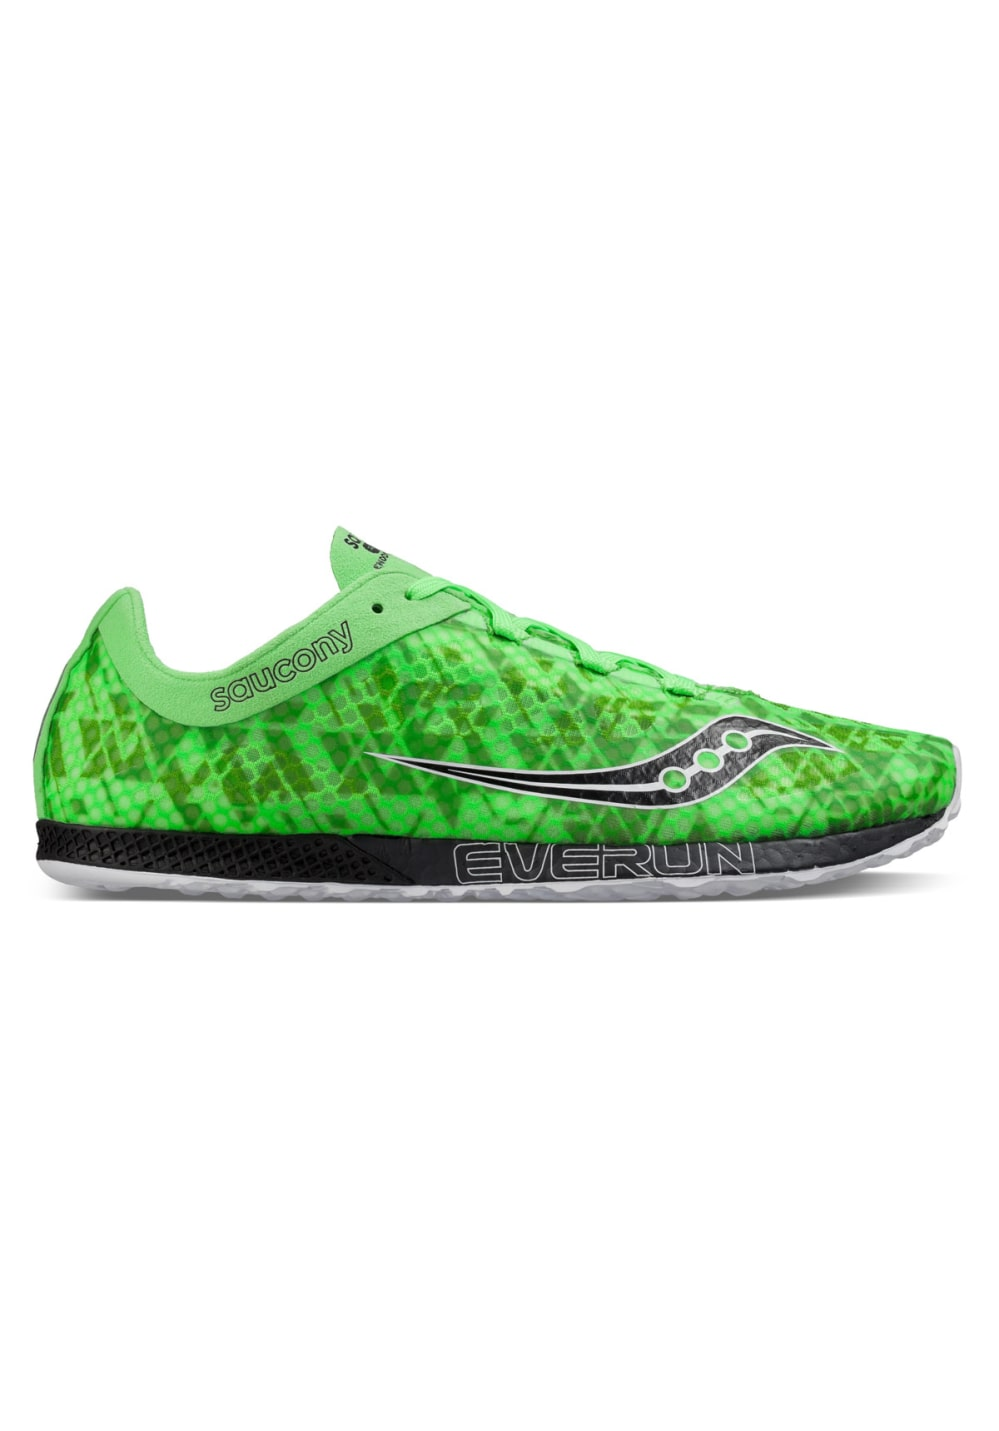 size 40 5f0c6 195f0 Saucony Endorphin Racer 2 - Running shoes for Men - Green